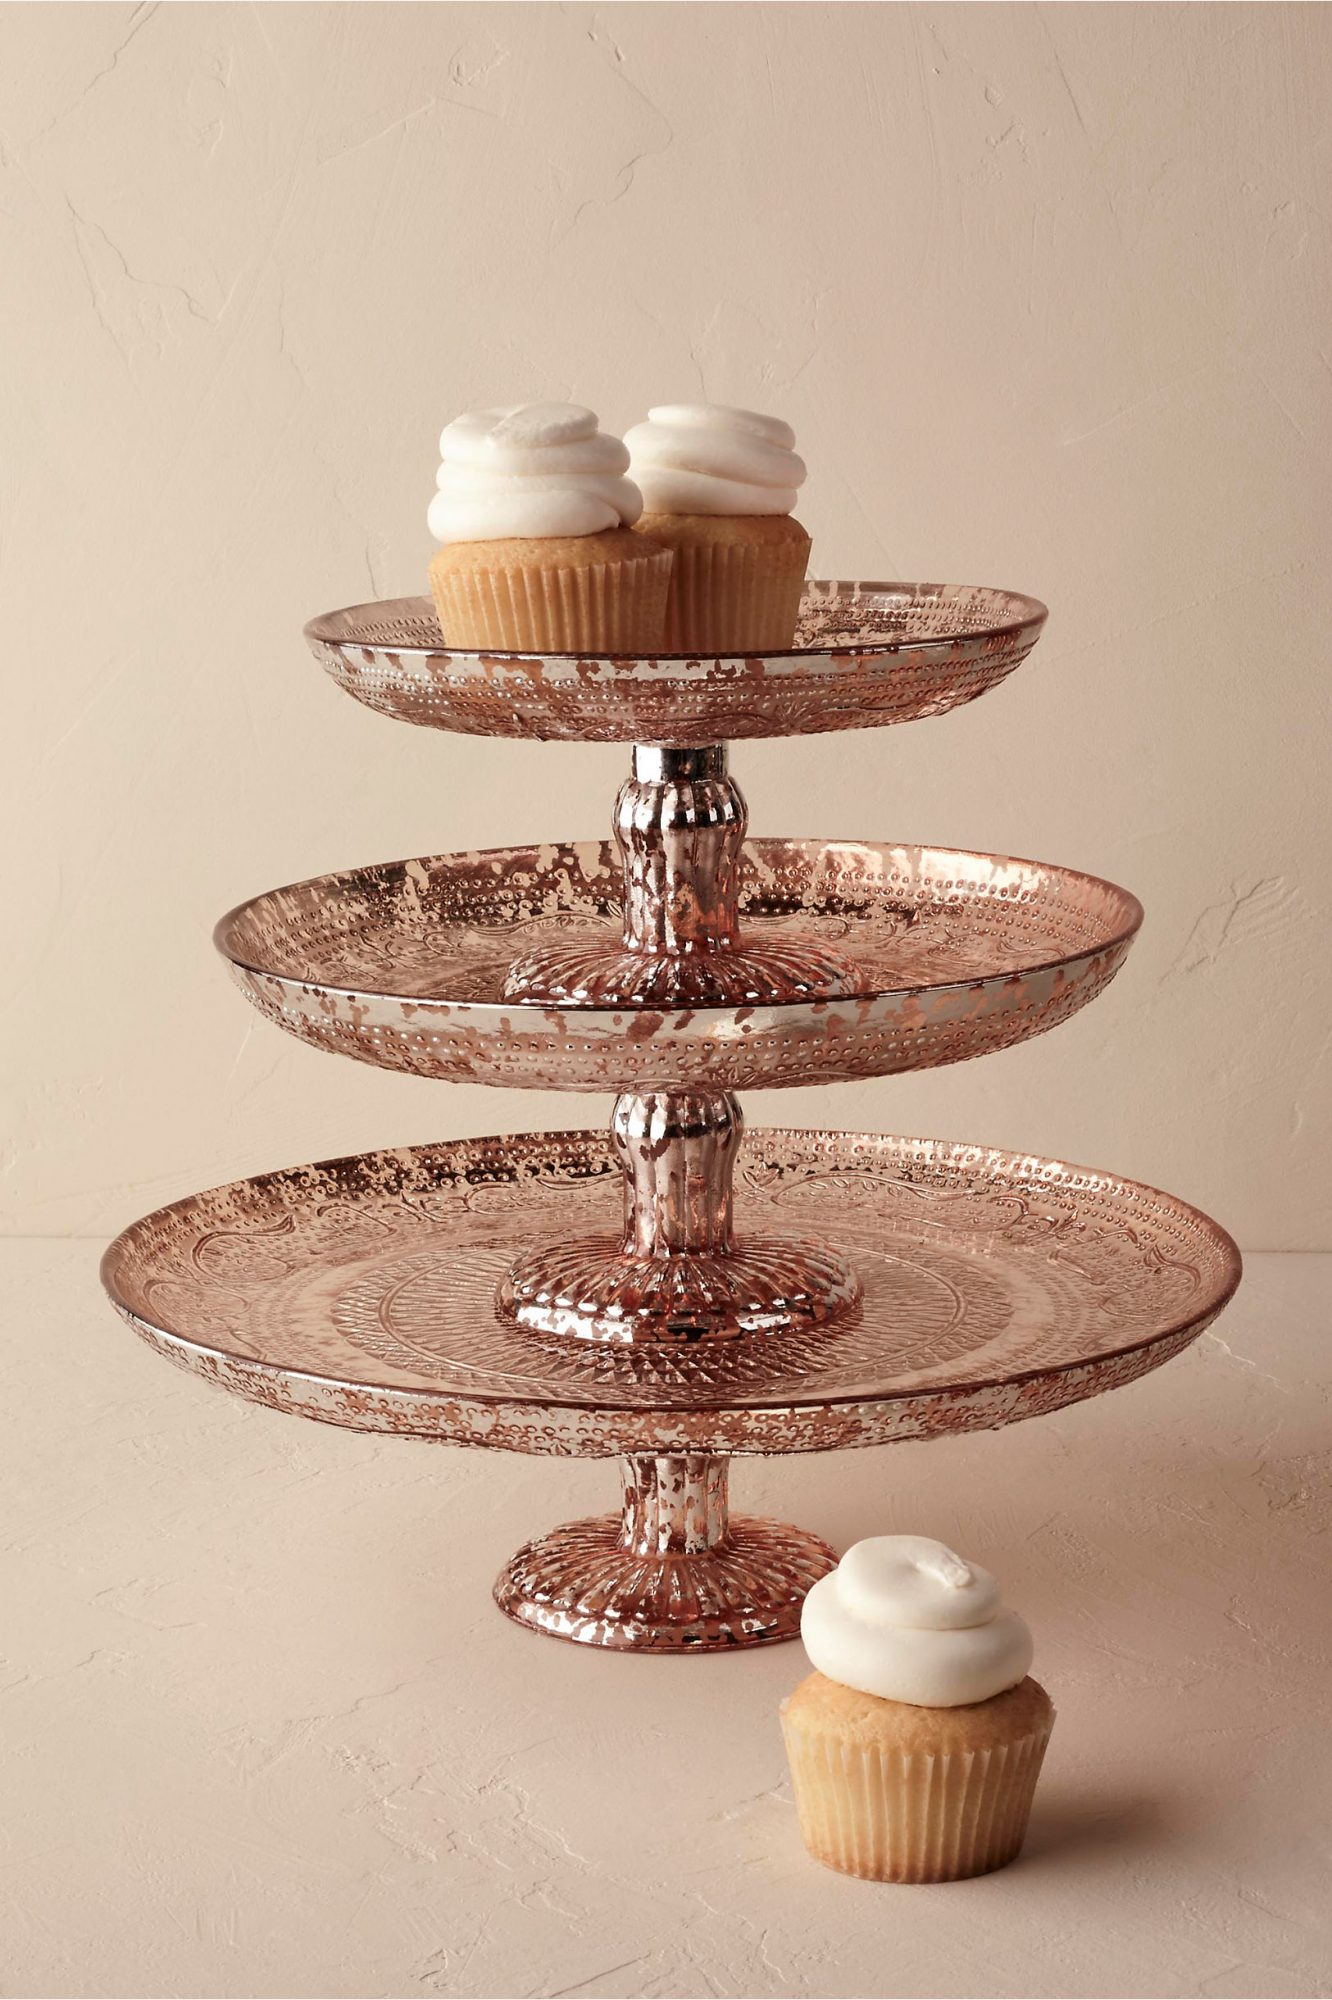 rose-gold-tiered-cakestand-bhldn-blog0417.jpeg